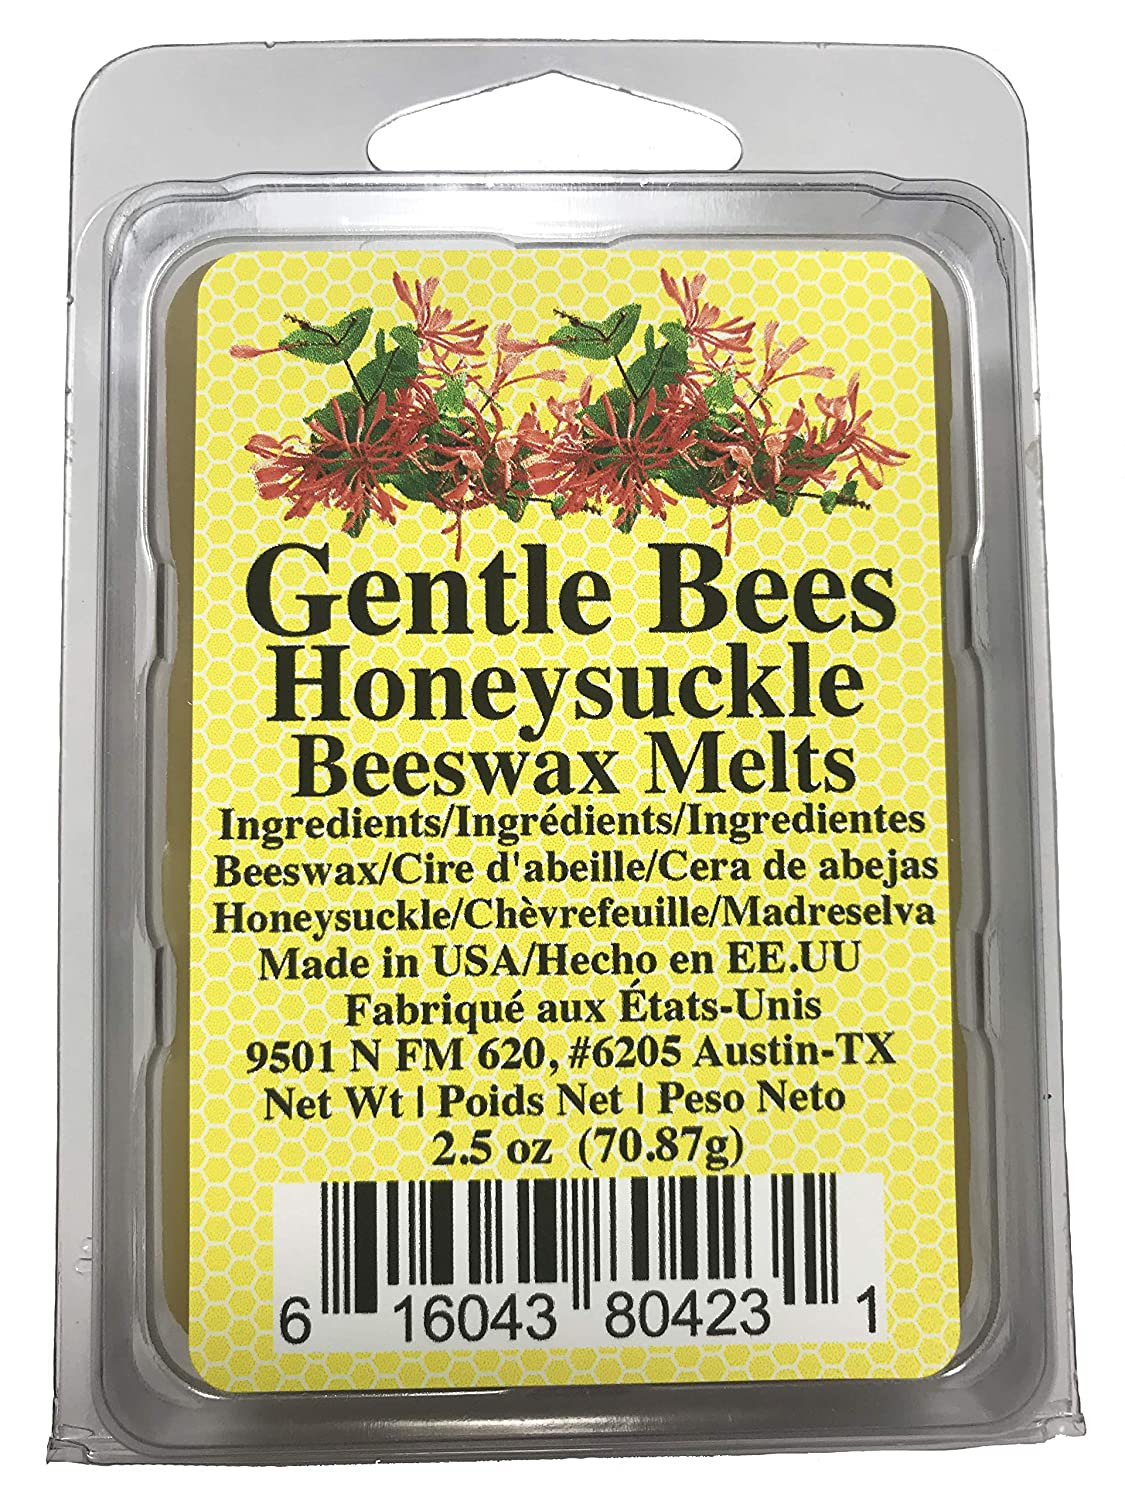 Gentle Bees 05 Honeysuckle Beeswax Melts Candle Frohne